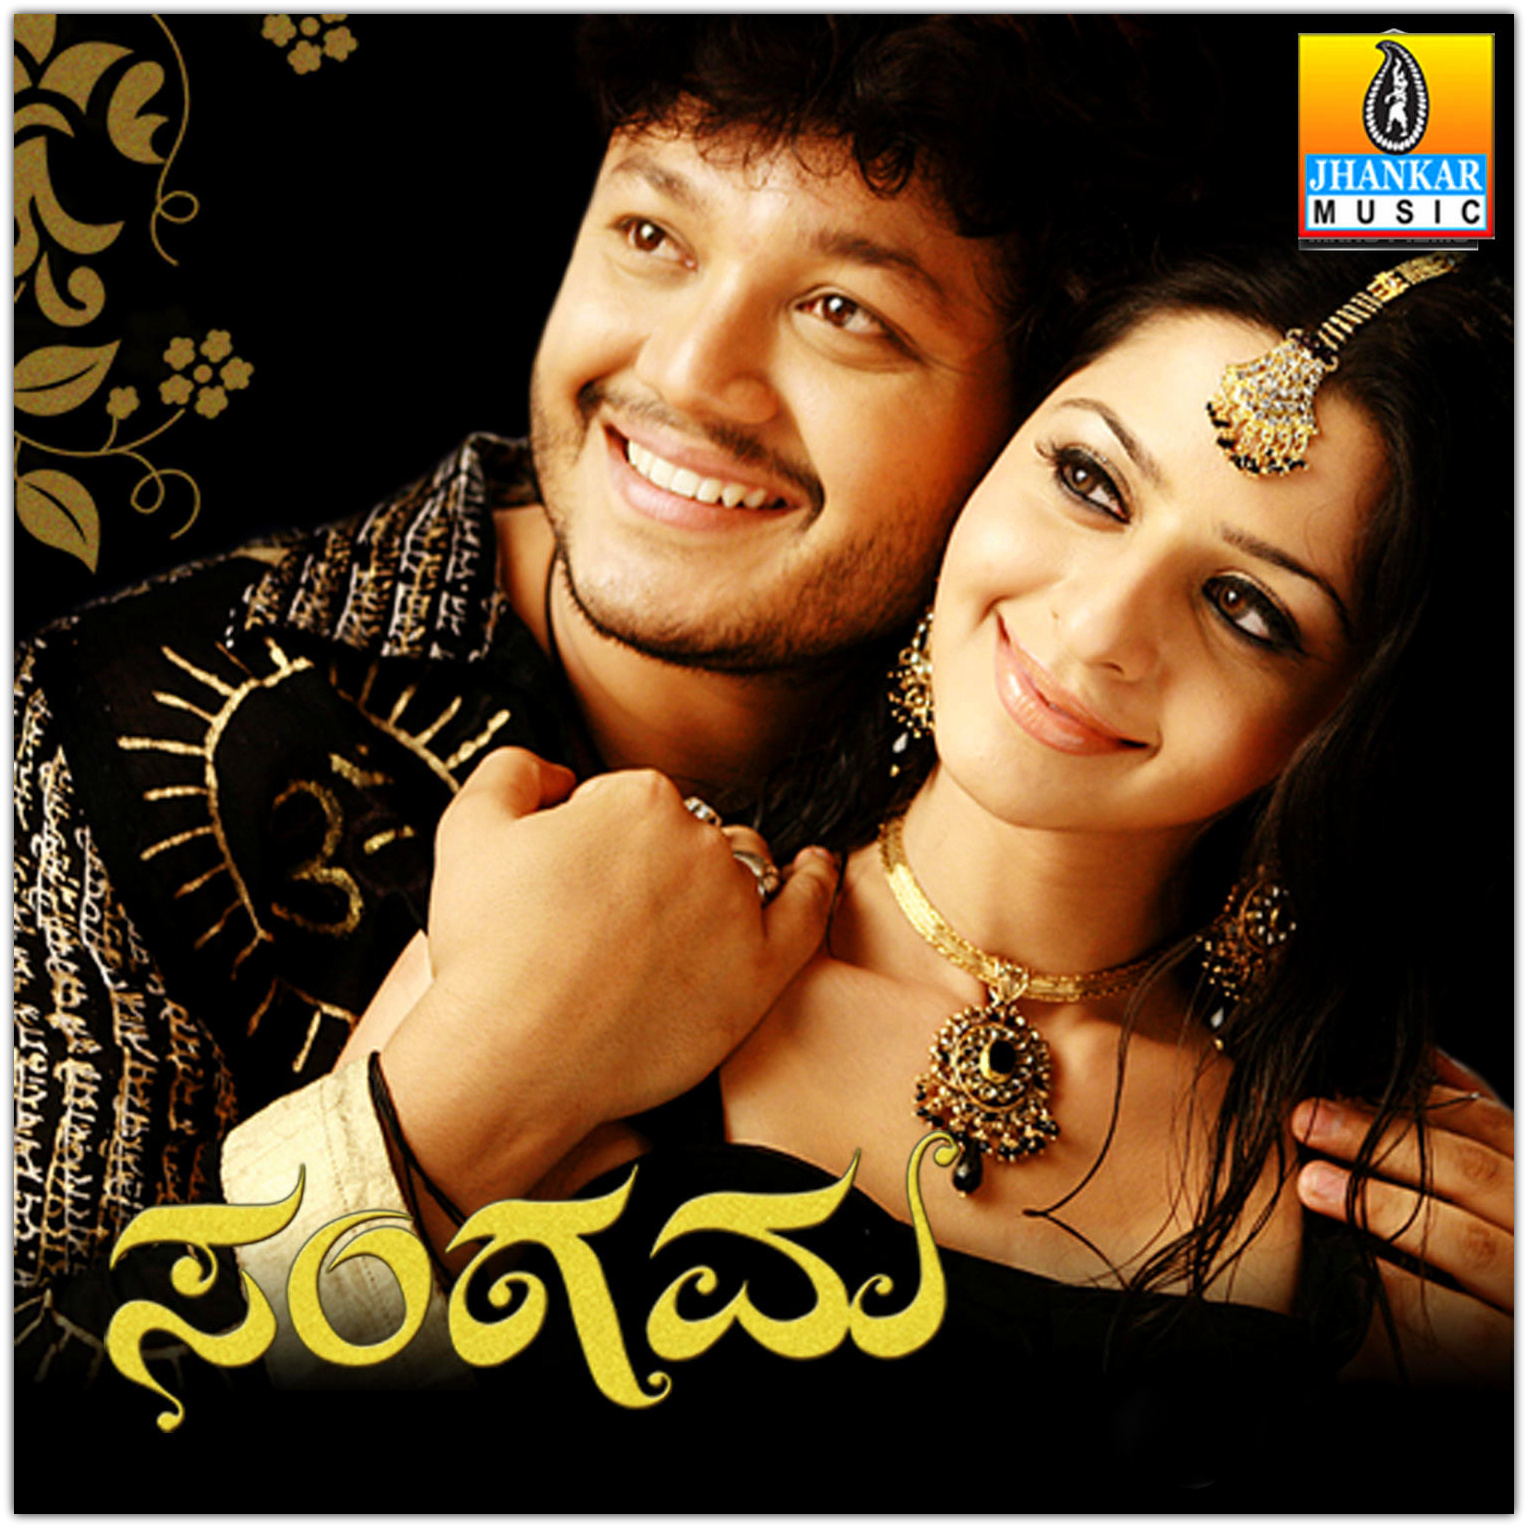 Kannada Movie Jogi Mp3 Song Download The Best Music site